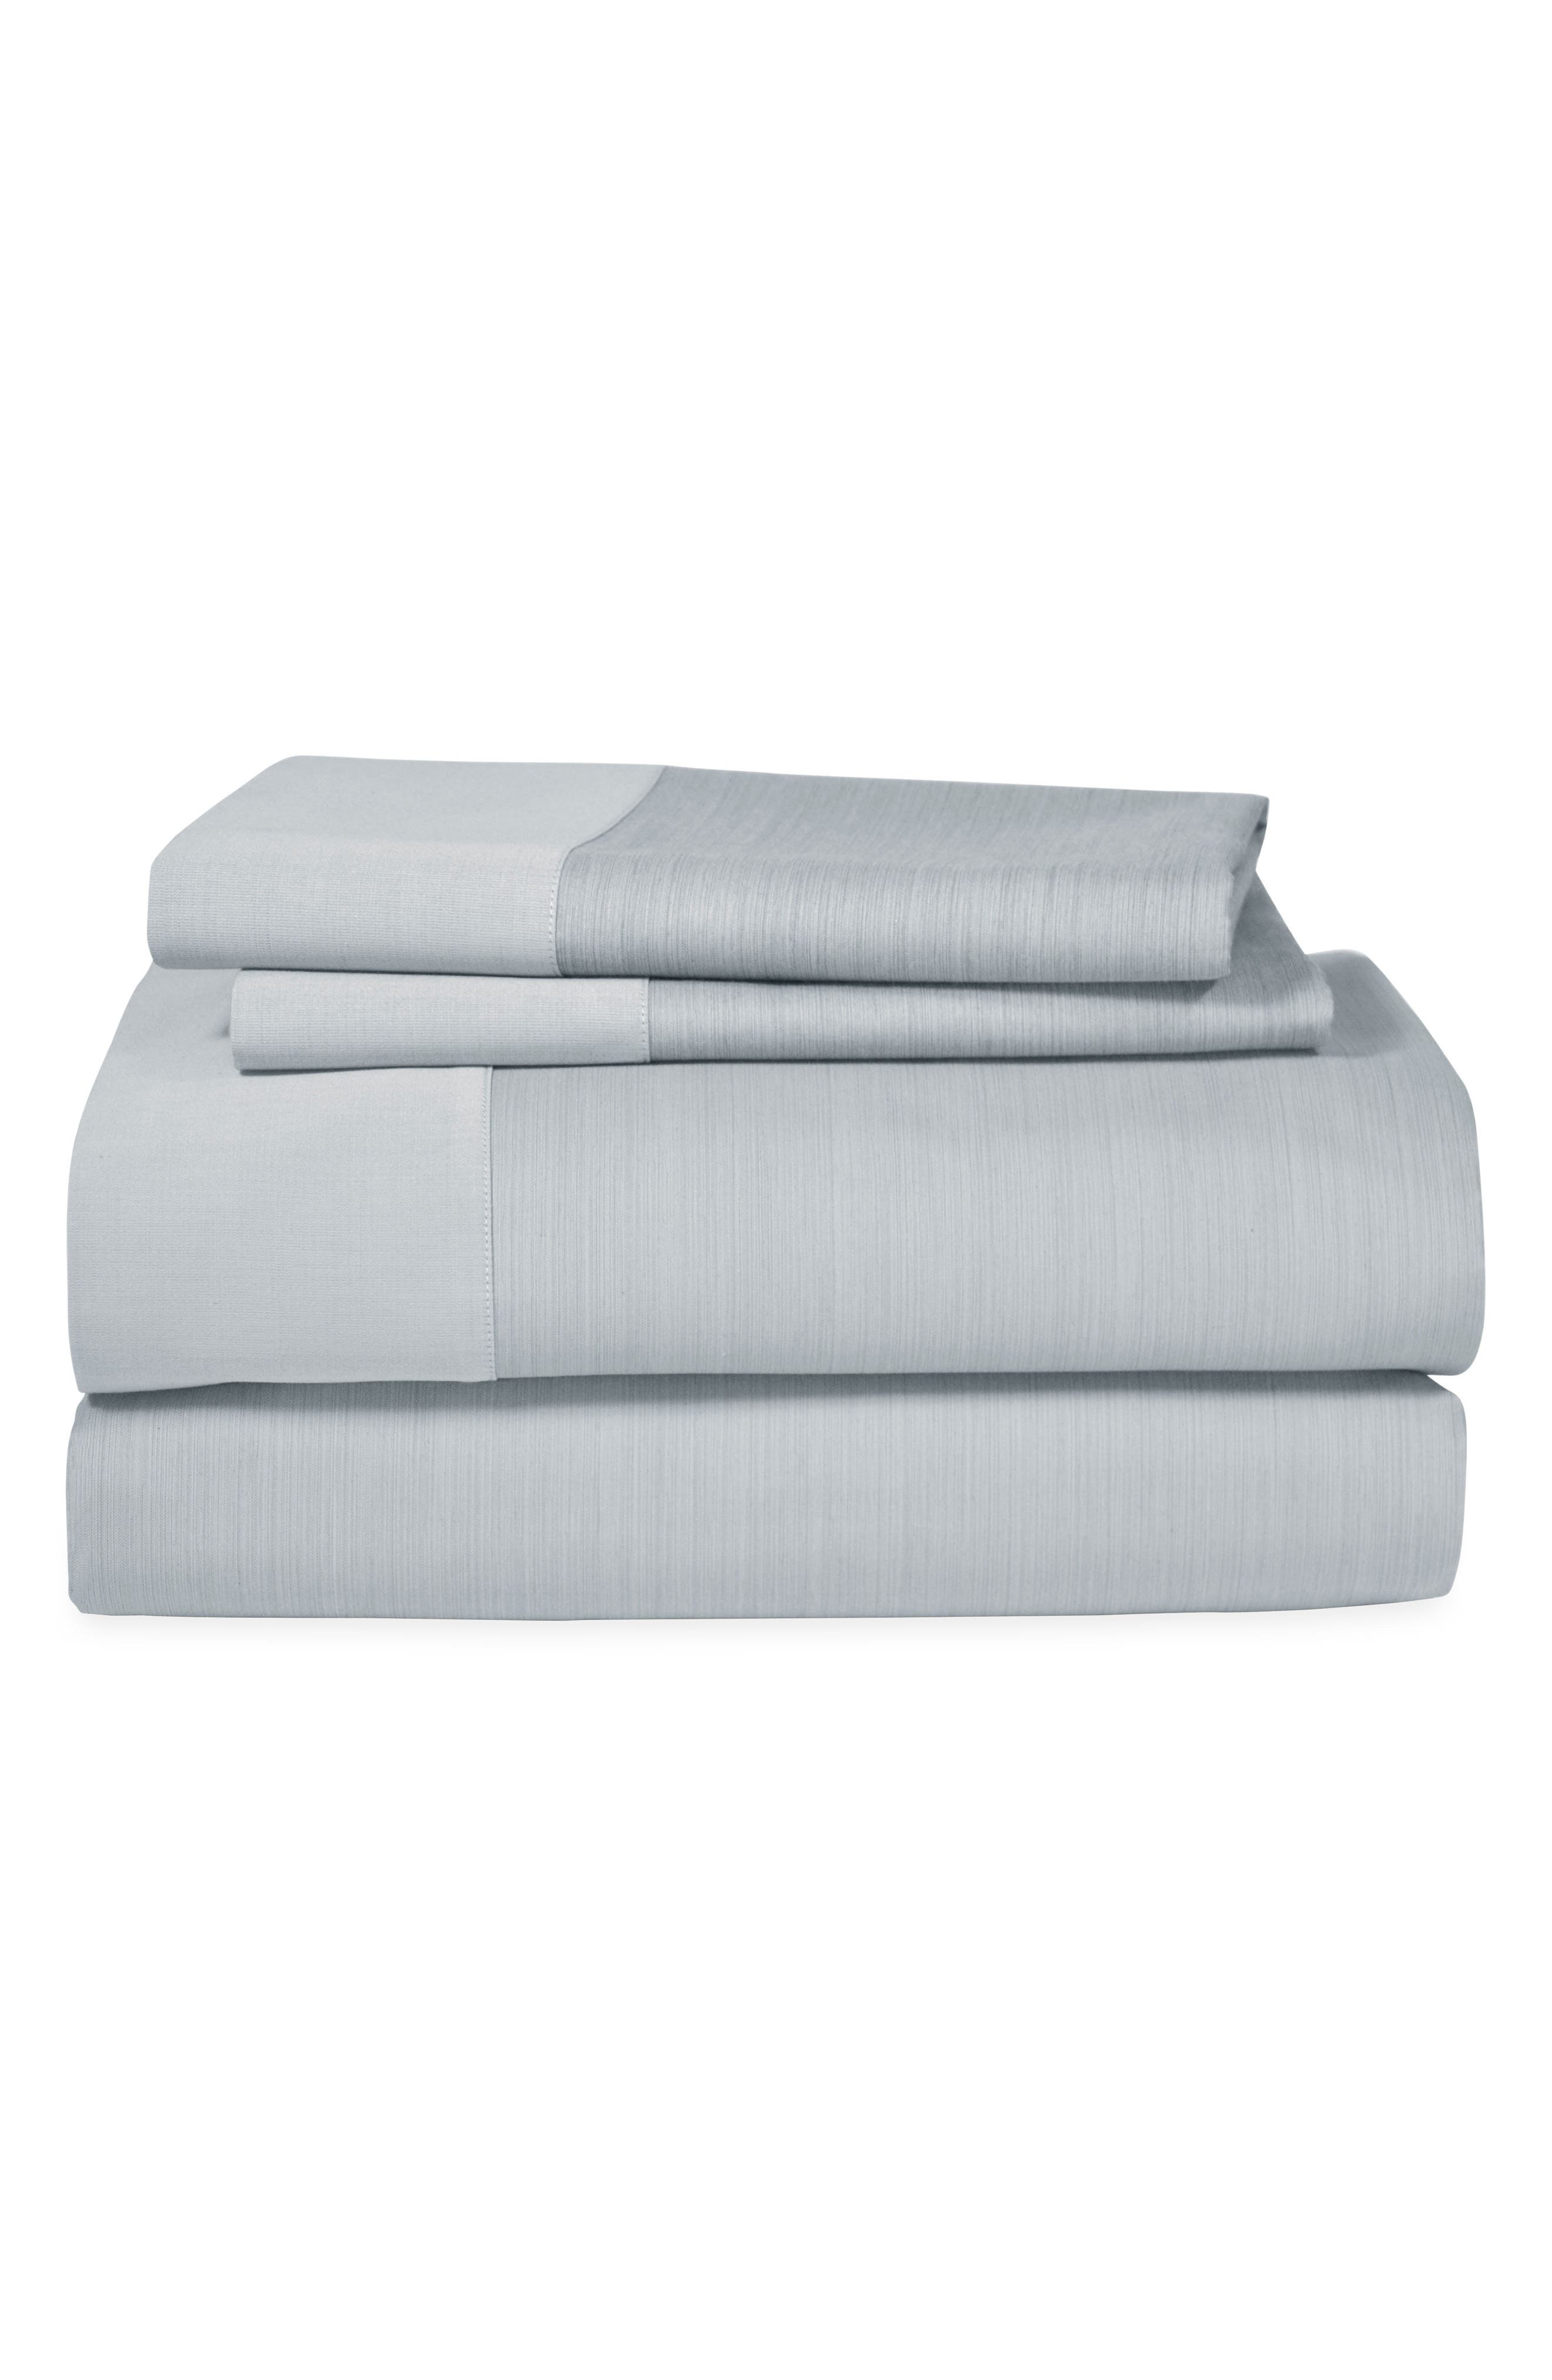 Striated Band 400 Thread Count Flat Sheet,                             Main thumbnail 1, color,                             GRAY